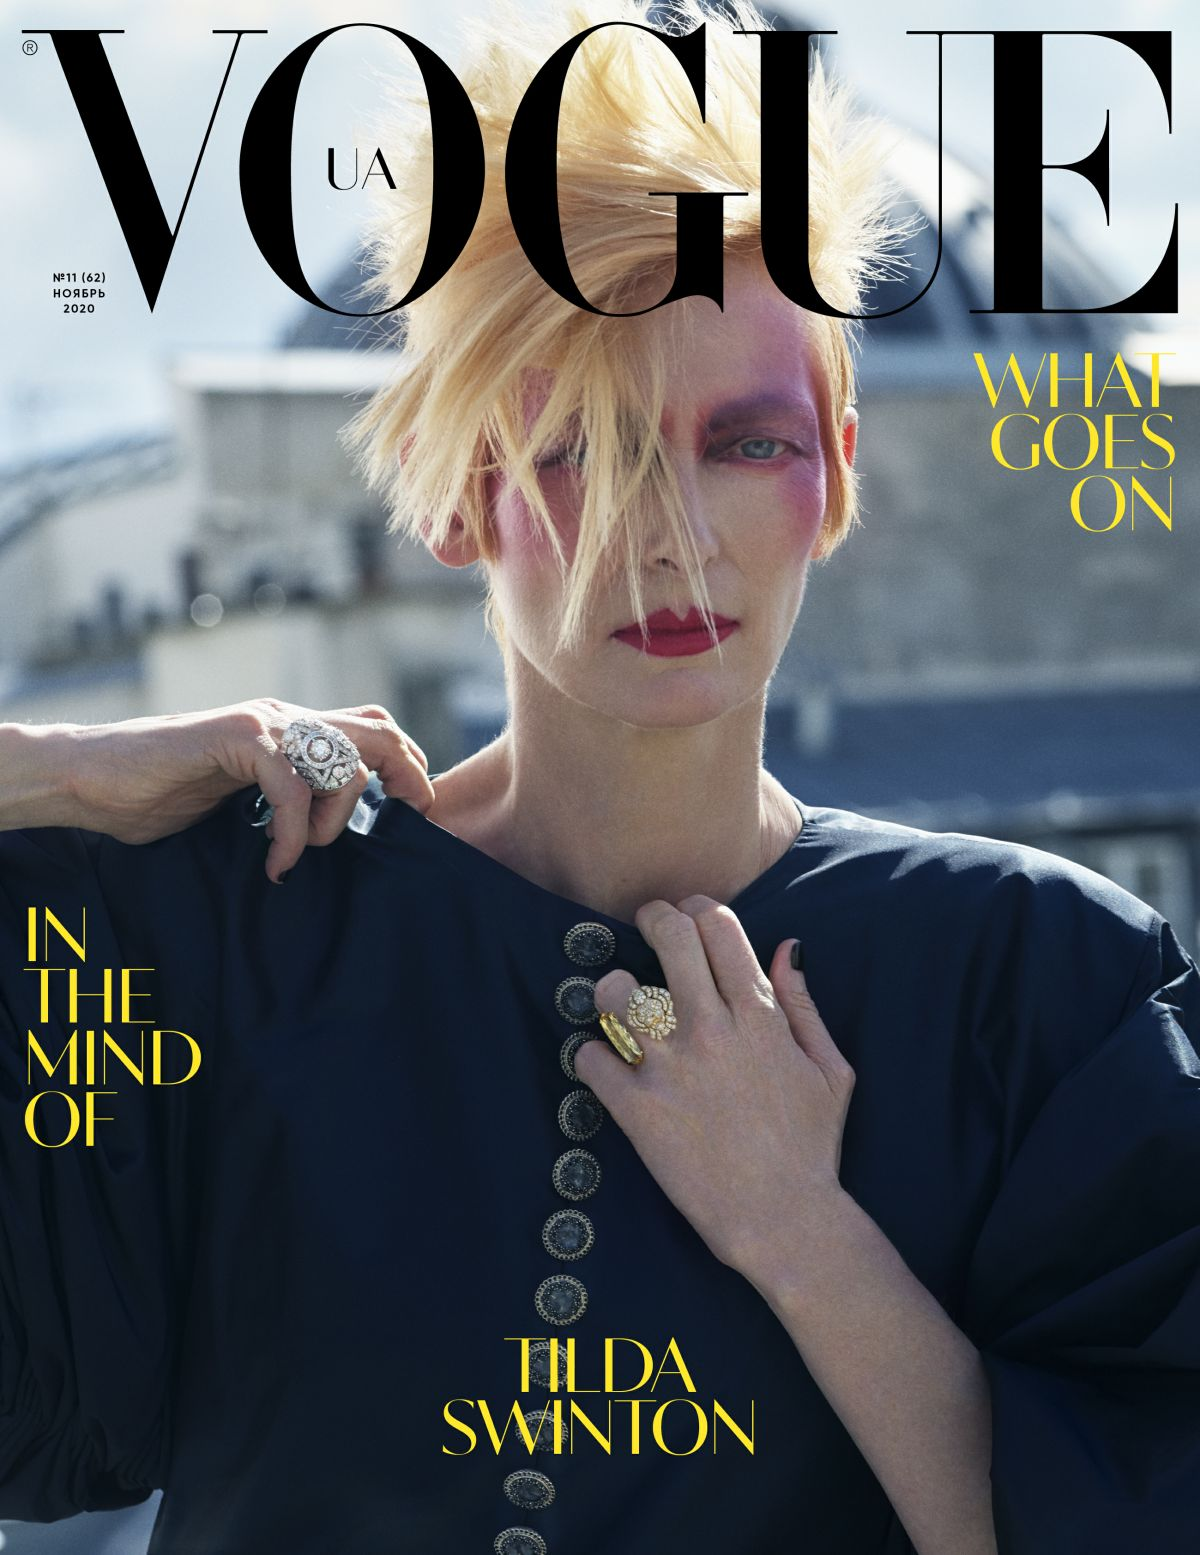 Tilda Swinton covers Vogue Ukraine November 2020 by Anton Corbijn